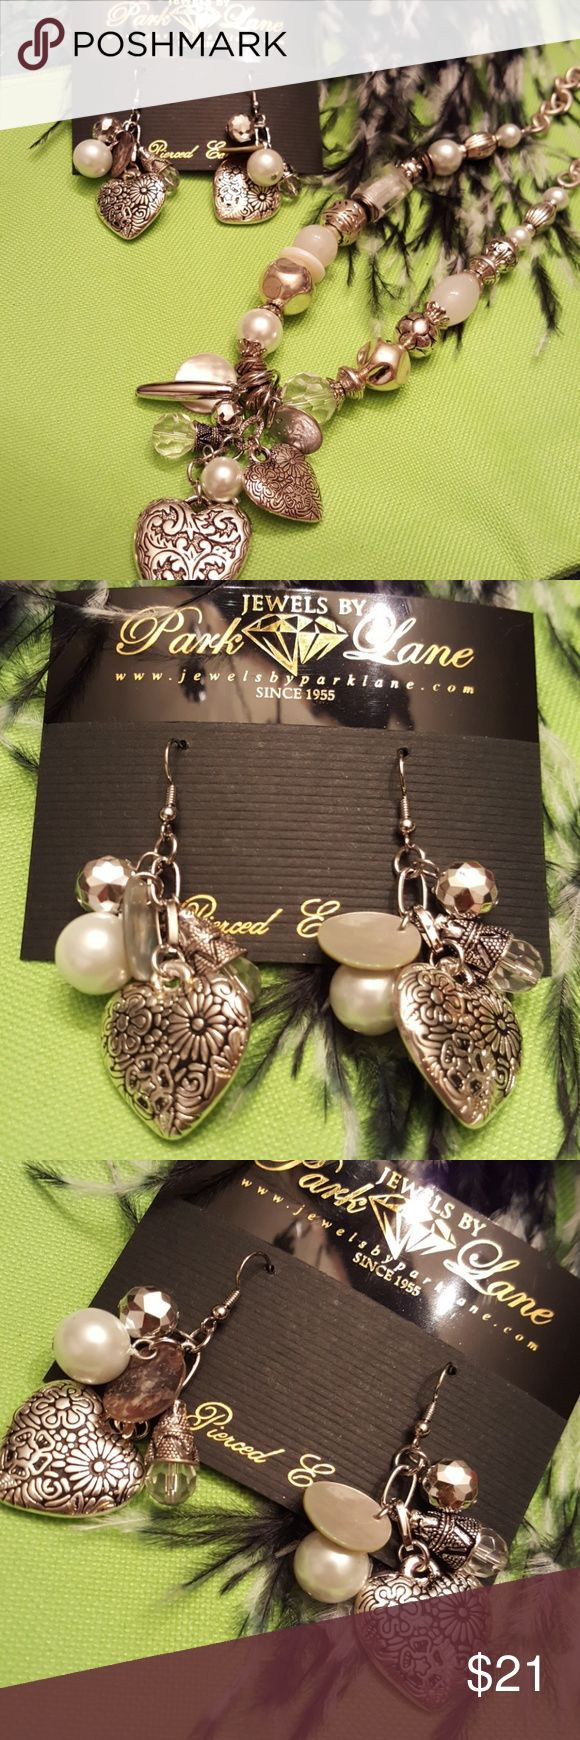 Park Lane Brite earrings Park Lane Brite earrings. Genuine seashells and faux pearls. NWT. Park Lane Jewelry Earrings